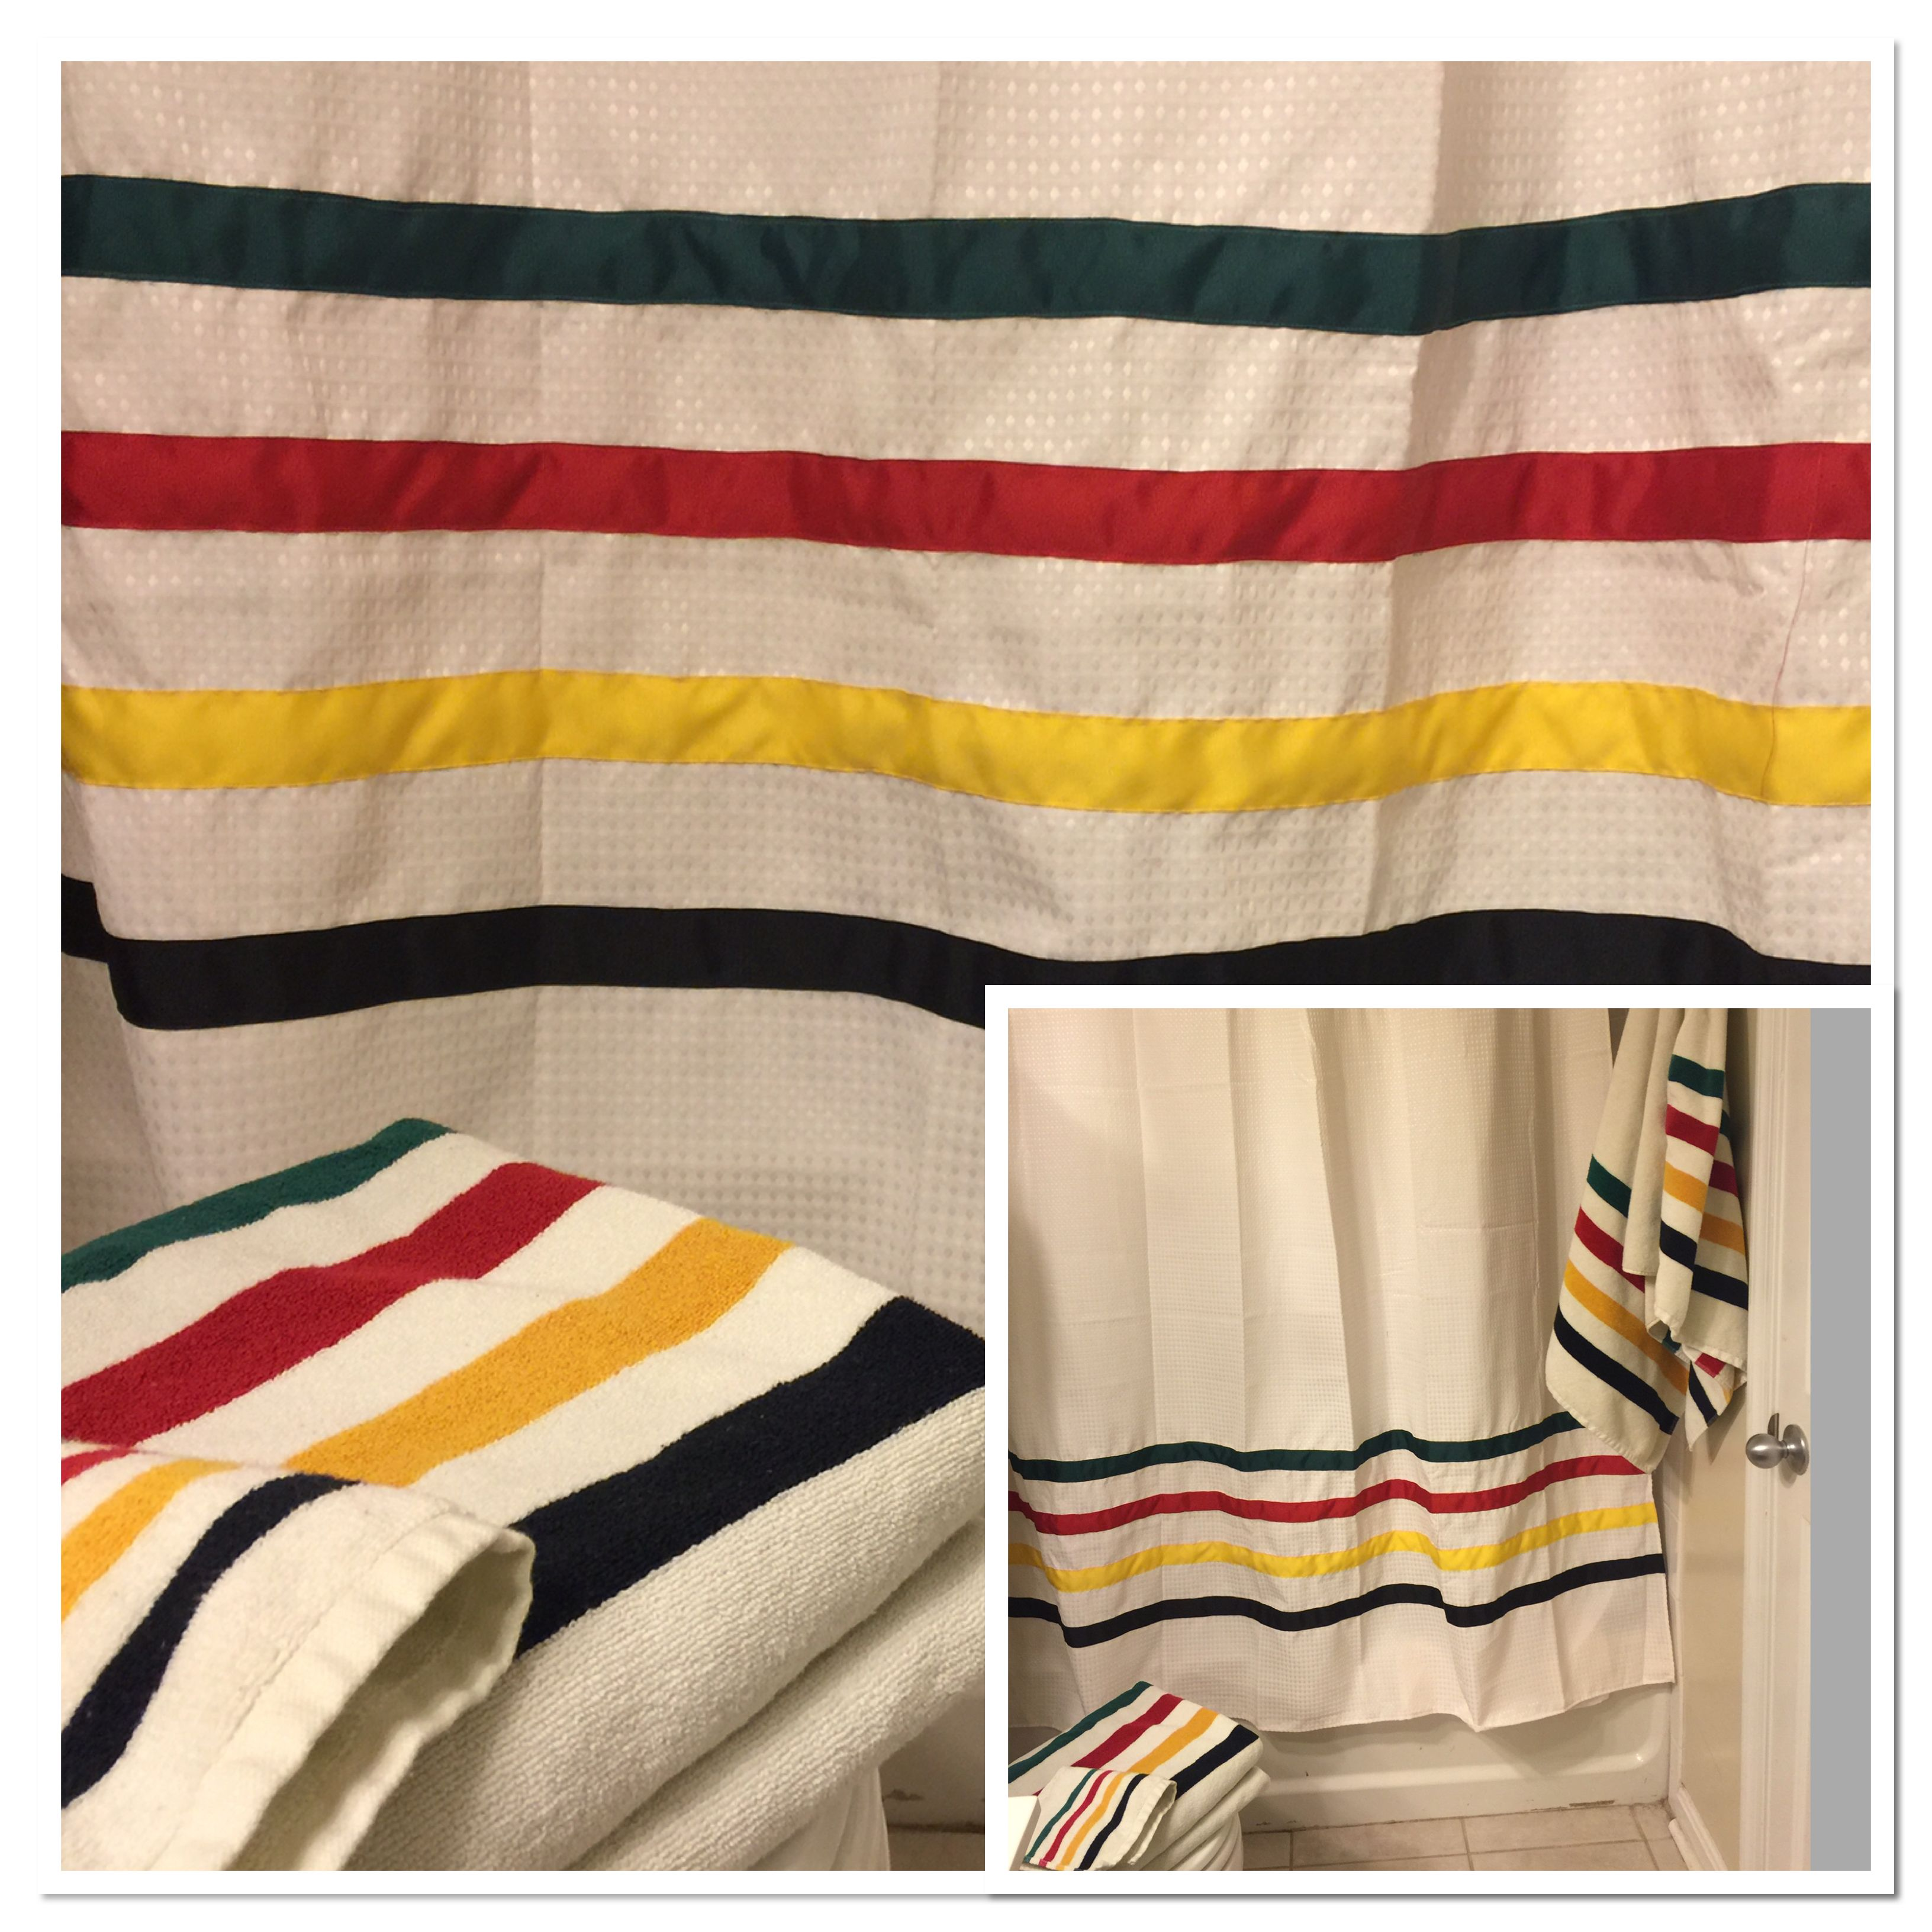 Pendleton Pendletonwm NationalParks Glacier National Parks I Made This Shower Curtain To Match Towel Set From Woolen Mills